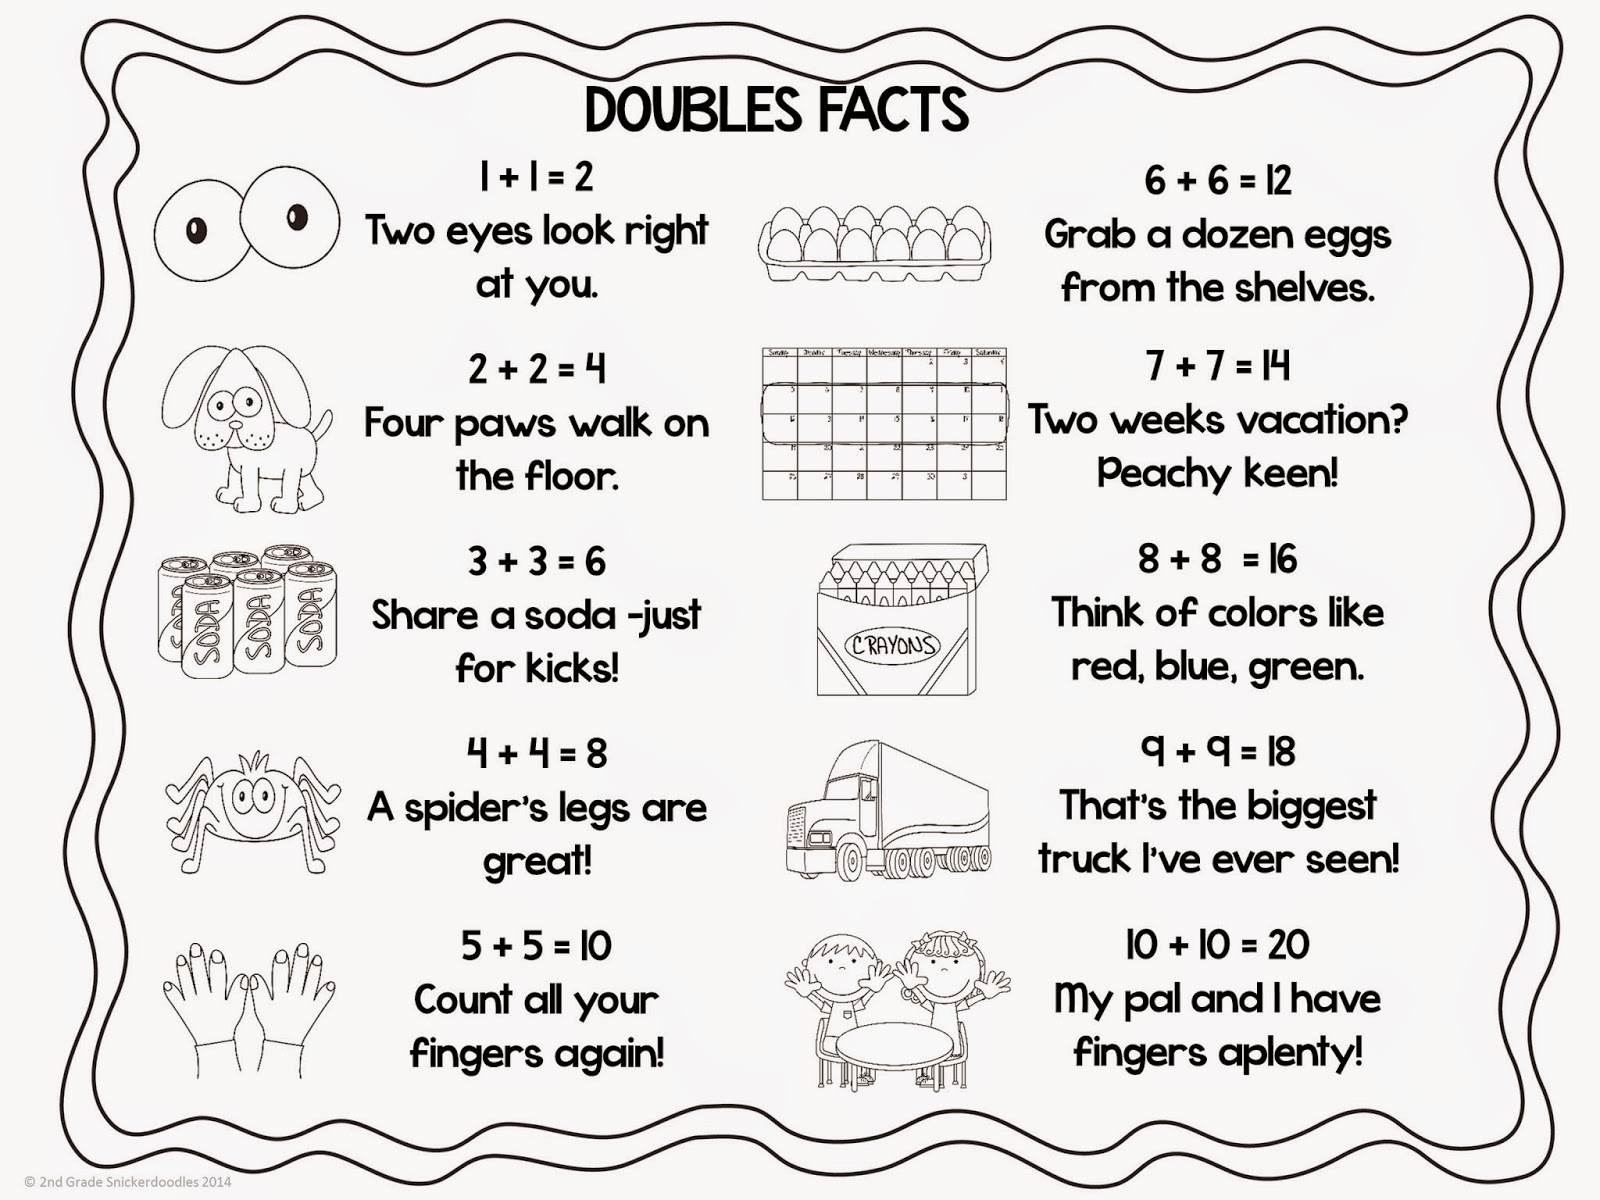 Uncategorized Doubles Facts Worksheets worksheet what is a double fact queensammy worksheets for 2nd grade snickerdoodles doubles facts freebie we will also add